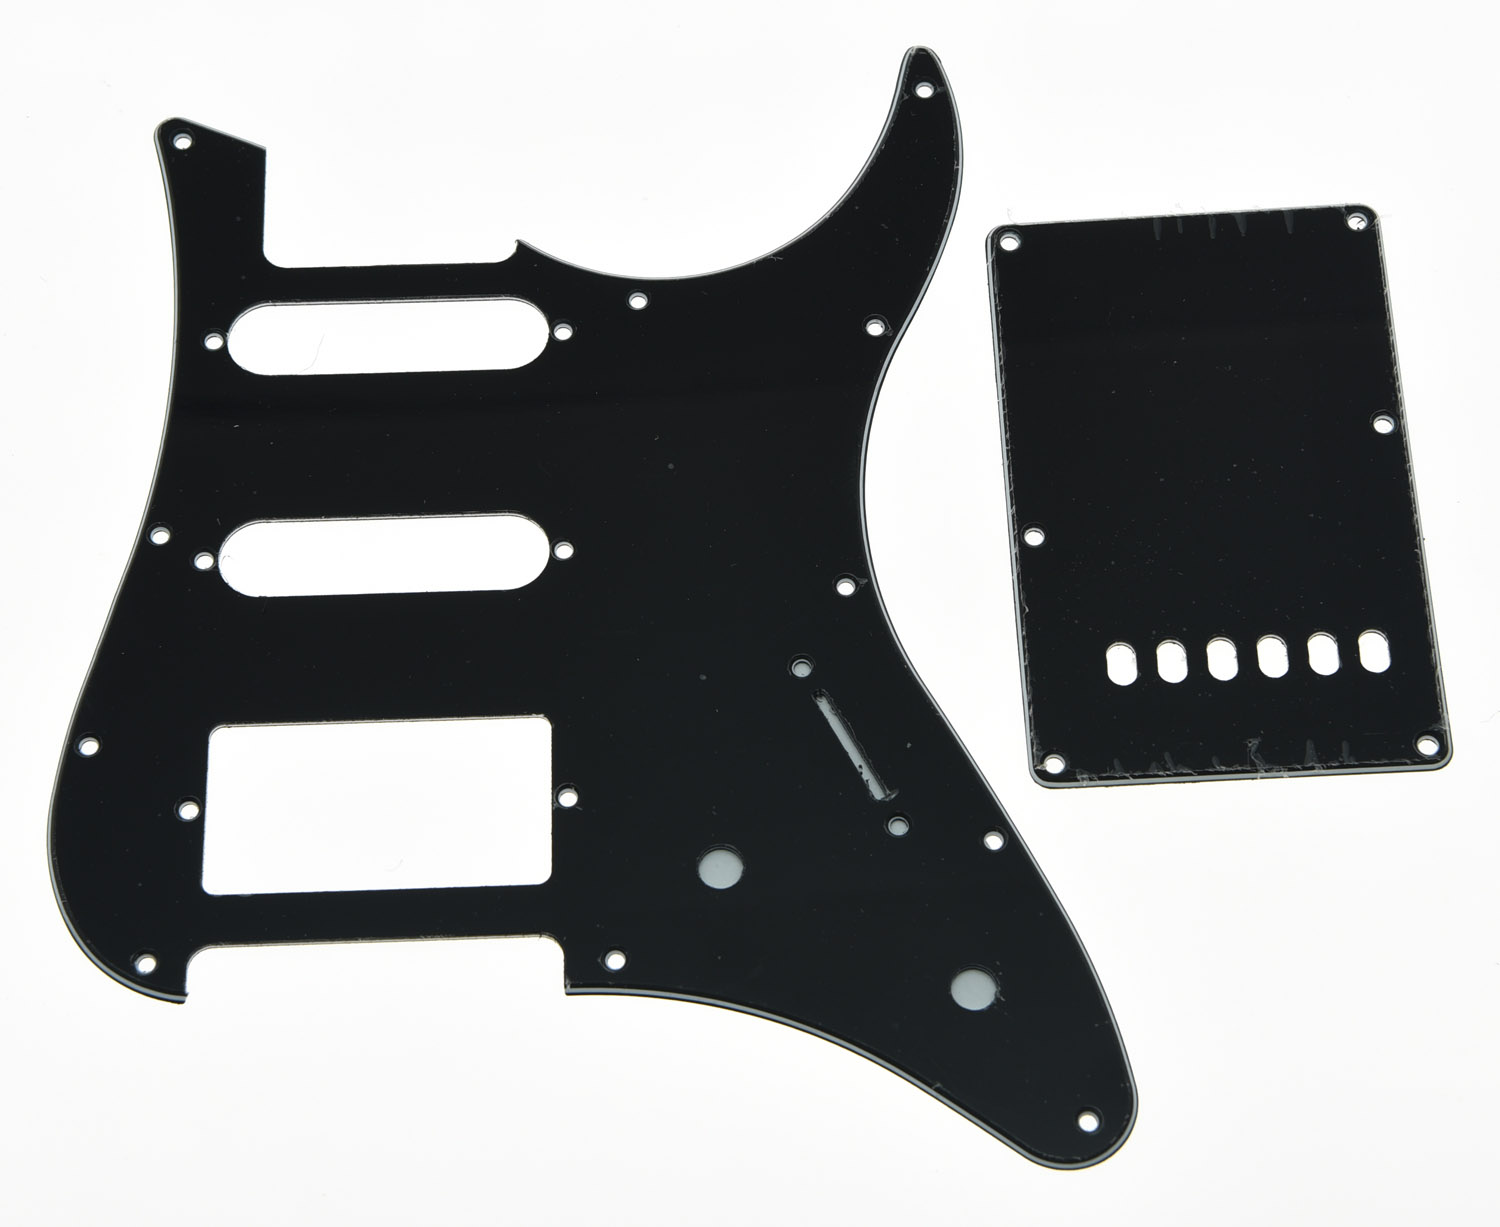 Black 3 Ply Guitar Pickguard w/ Back Plate and Screws fits Yamaha PACIFICA цены